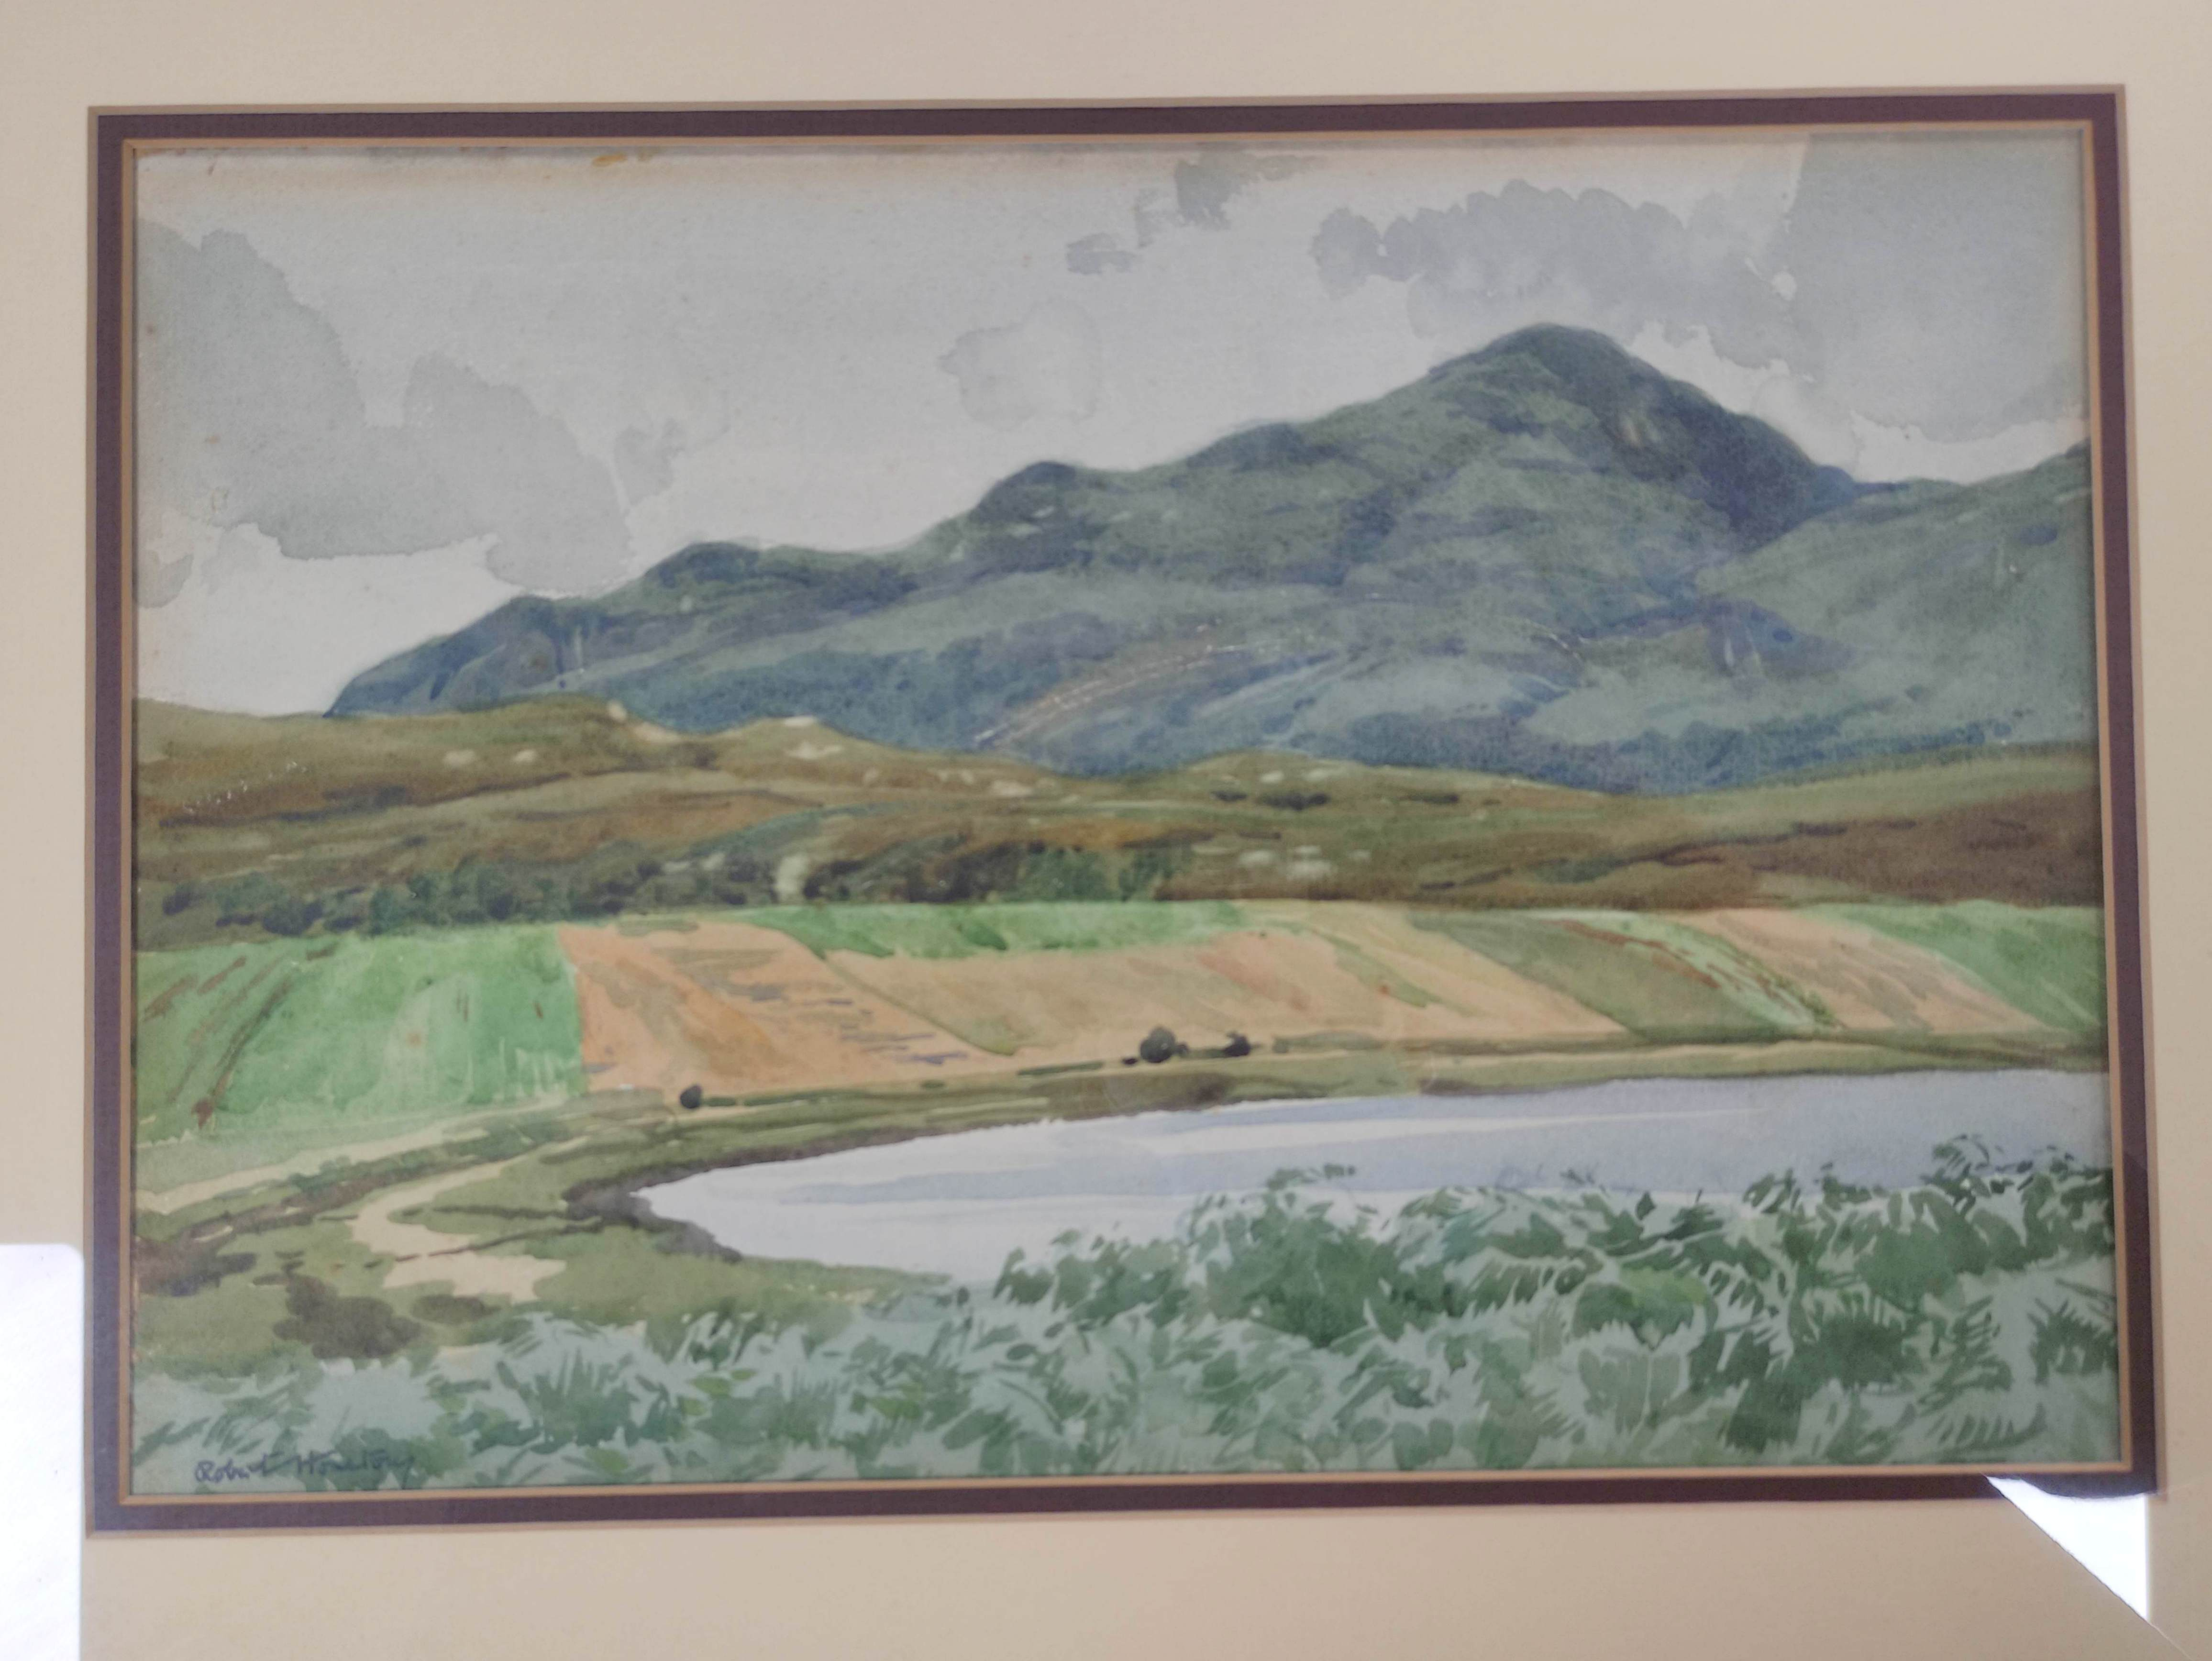 ROBERT HOUSTON. Beinn na Caillich, Skye. Signed, watercolour. 24cm x 34cm. - Image 2 of 5